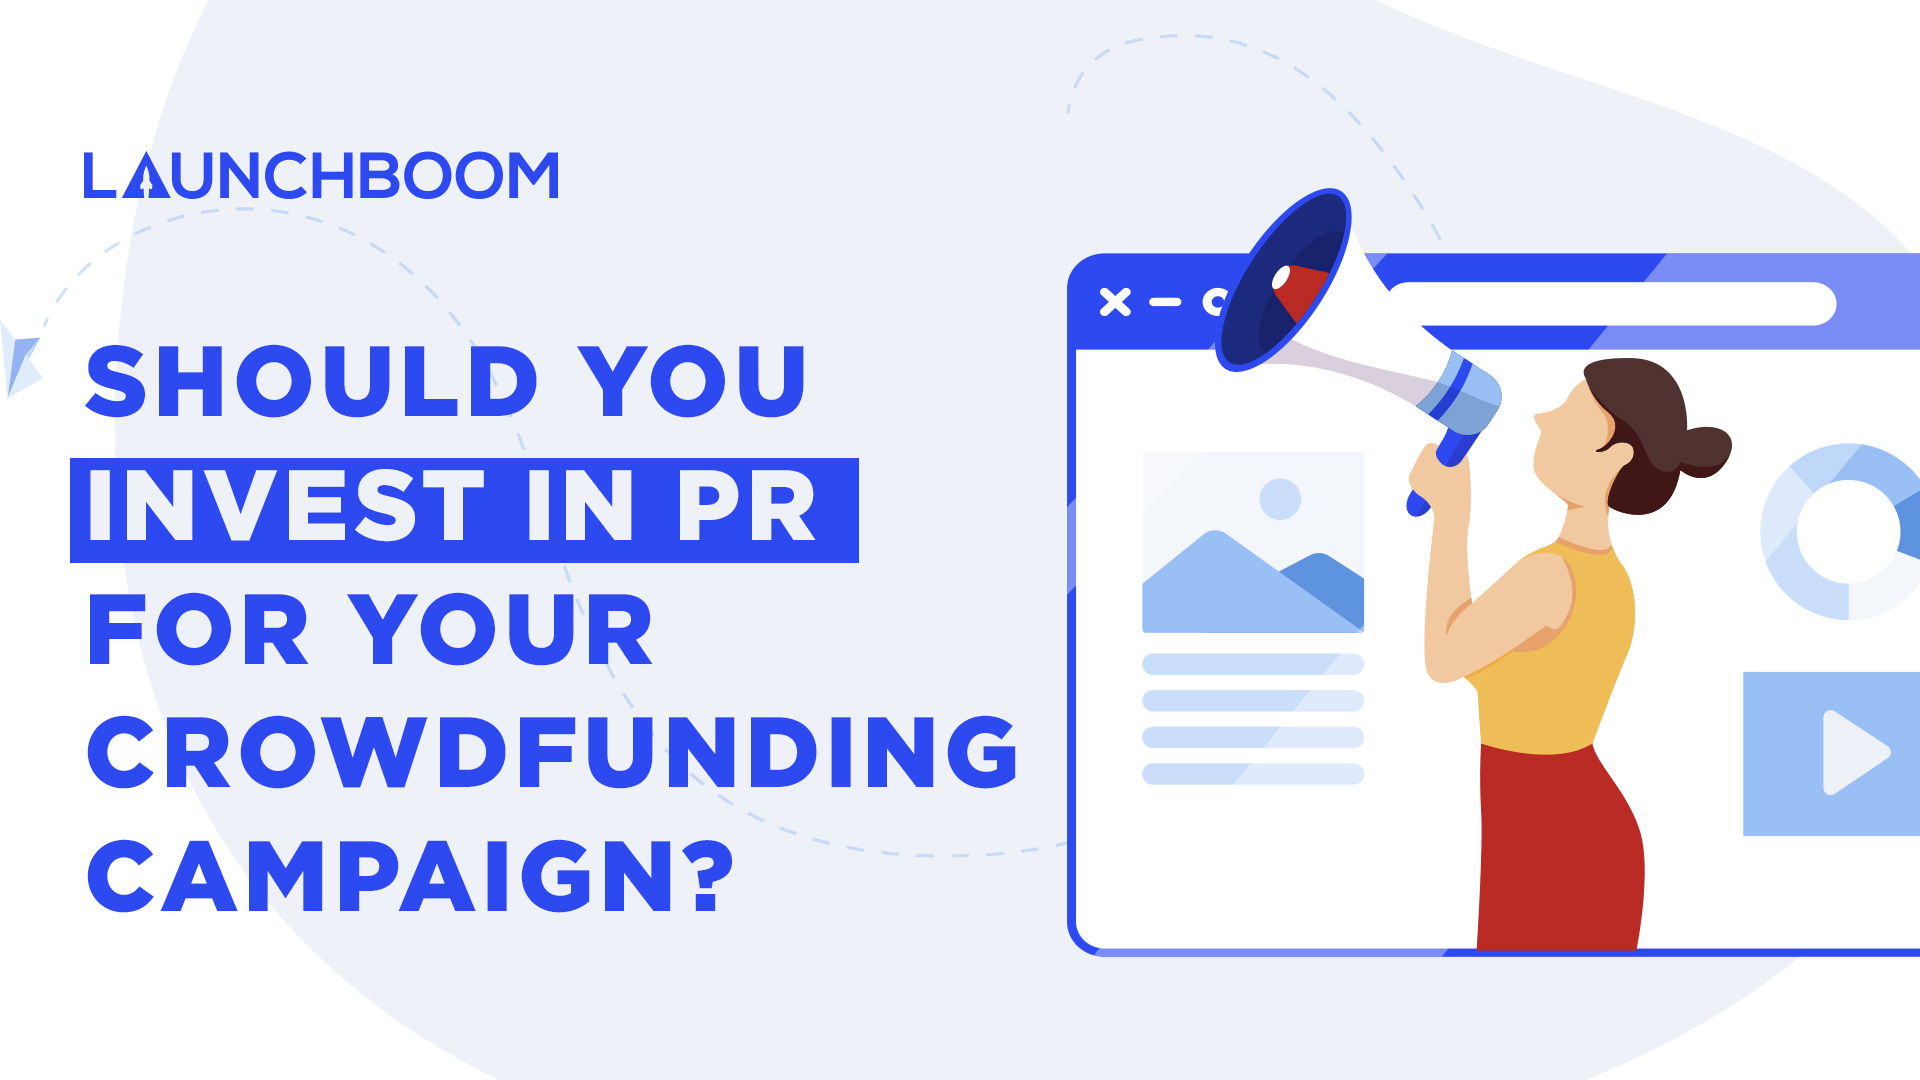 Should you invest in PR for your crowdfunding campaign?